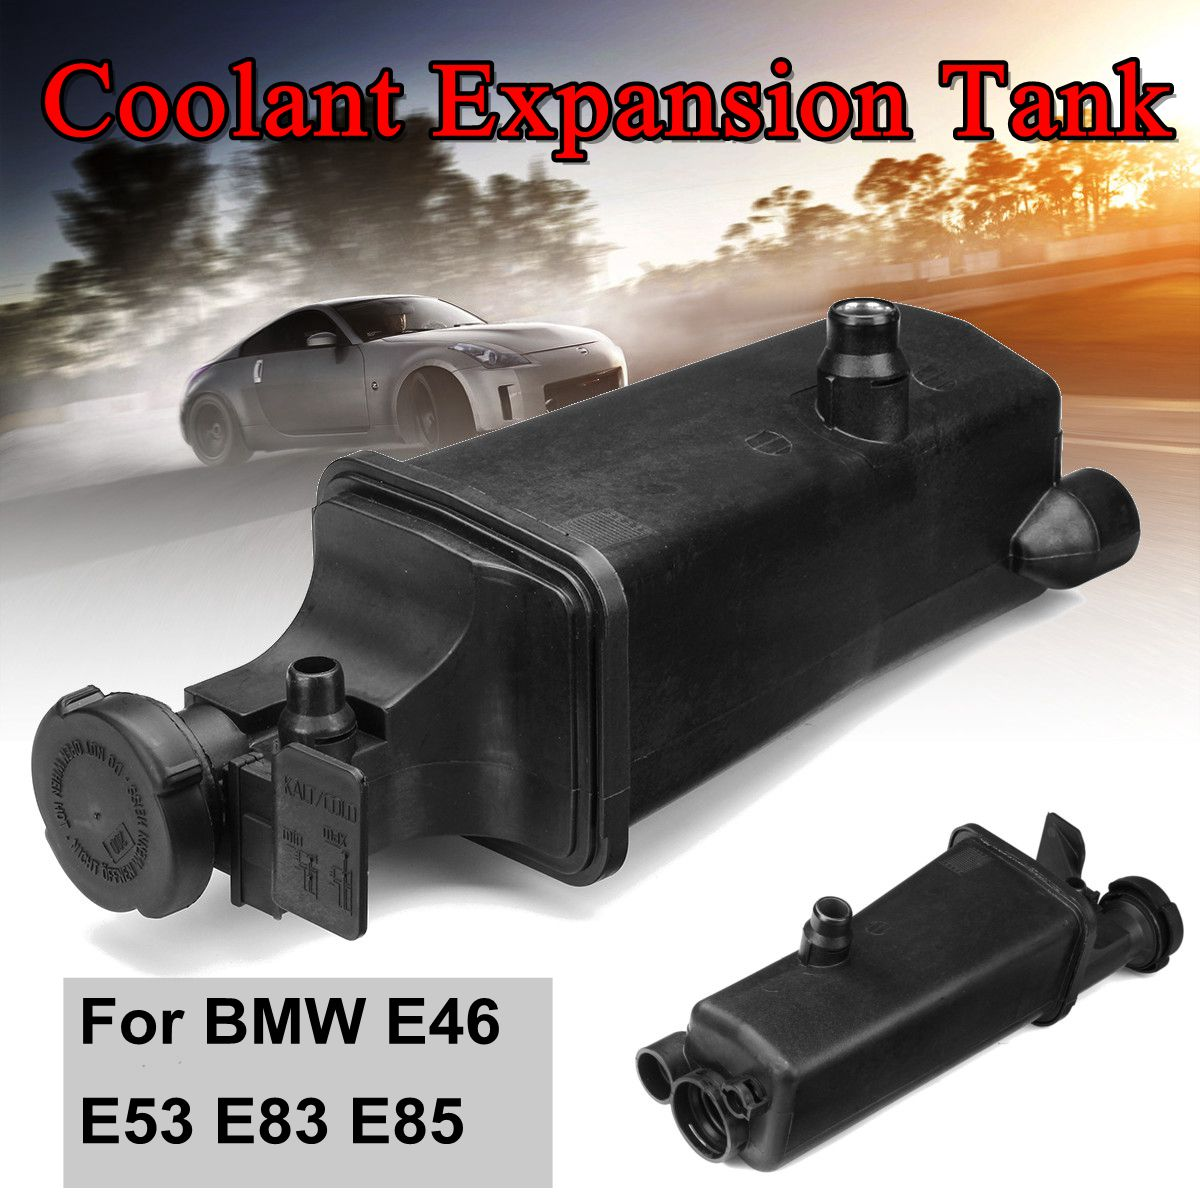 Auto Radiator Coolant Overflow Expansion Tank with Cap <font><b>17117573781</b></font> For BMW E46 E53 E83 E85 image